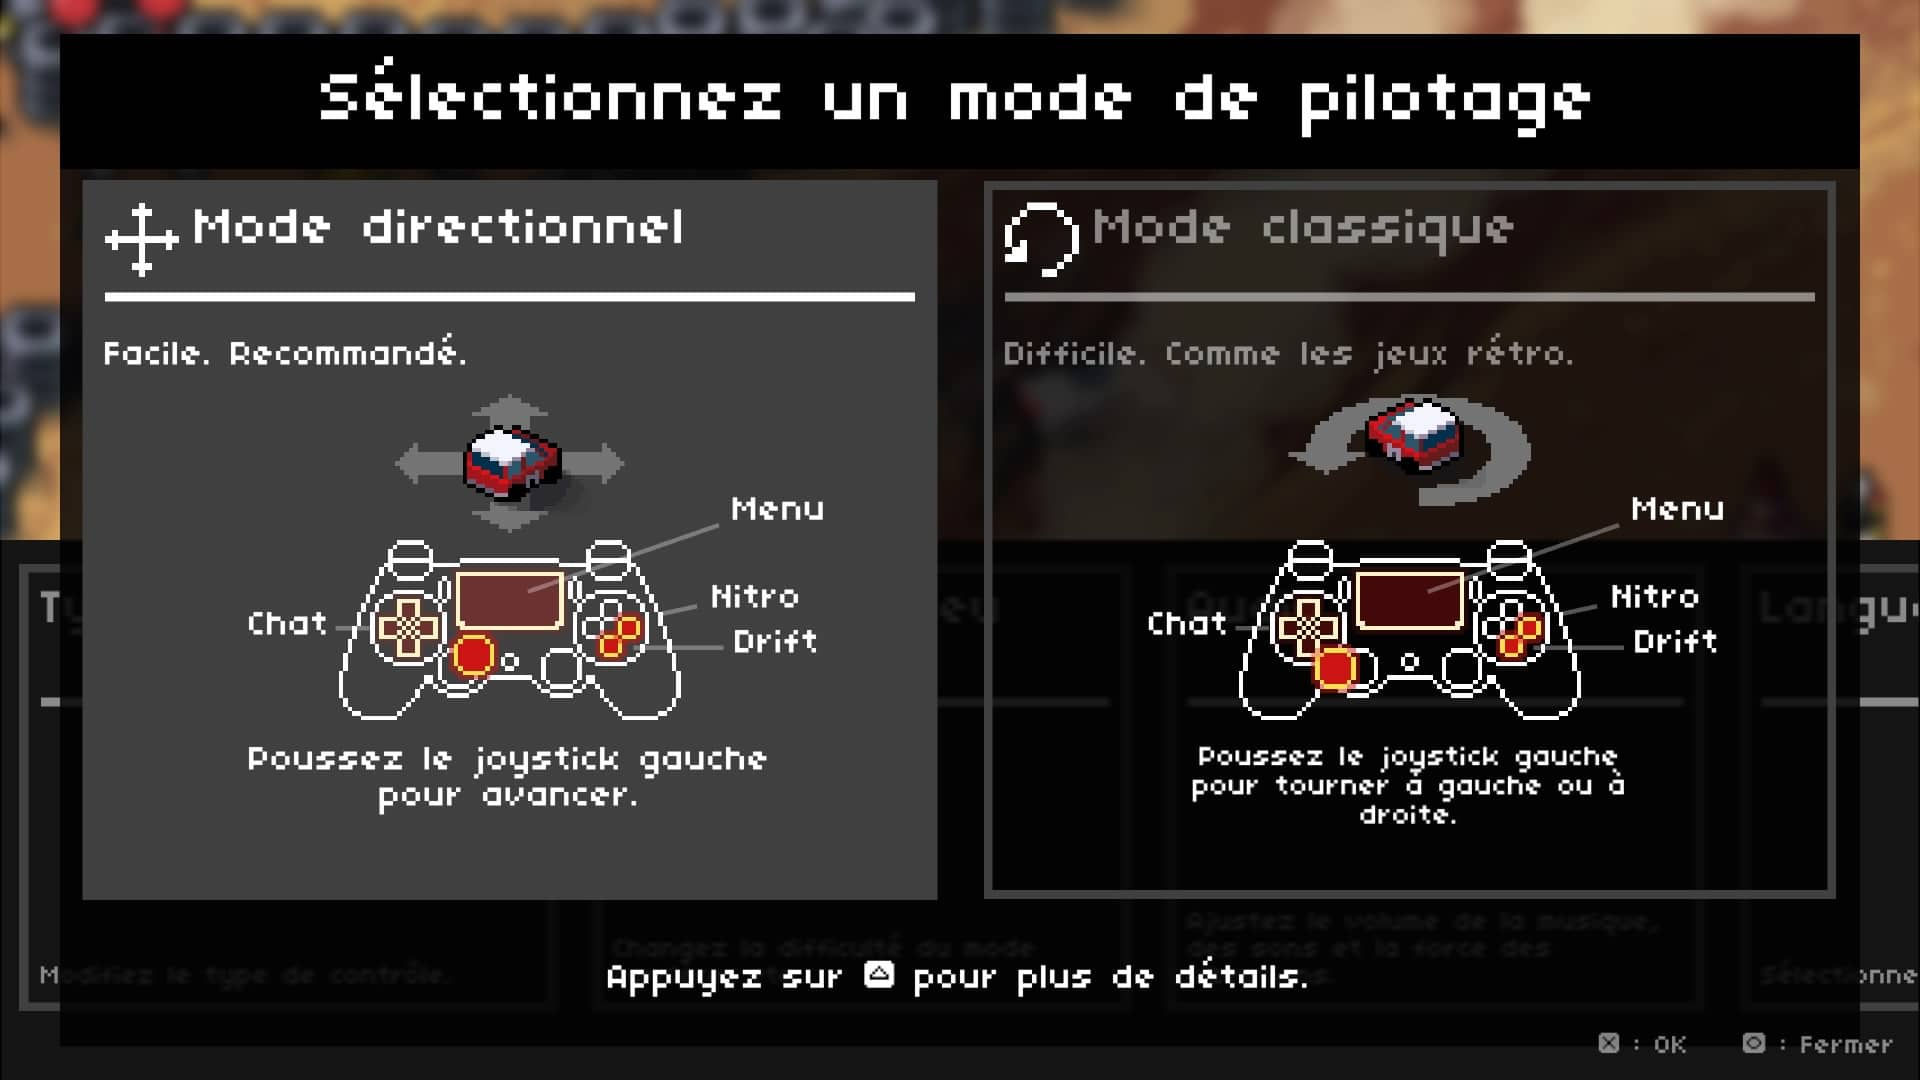 Super Pixel Racers Le Jeu De Course 16bits Au Gameplay